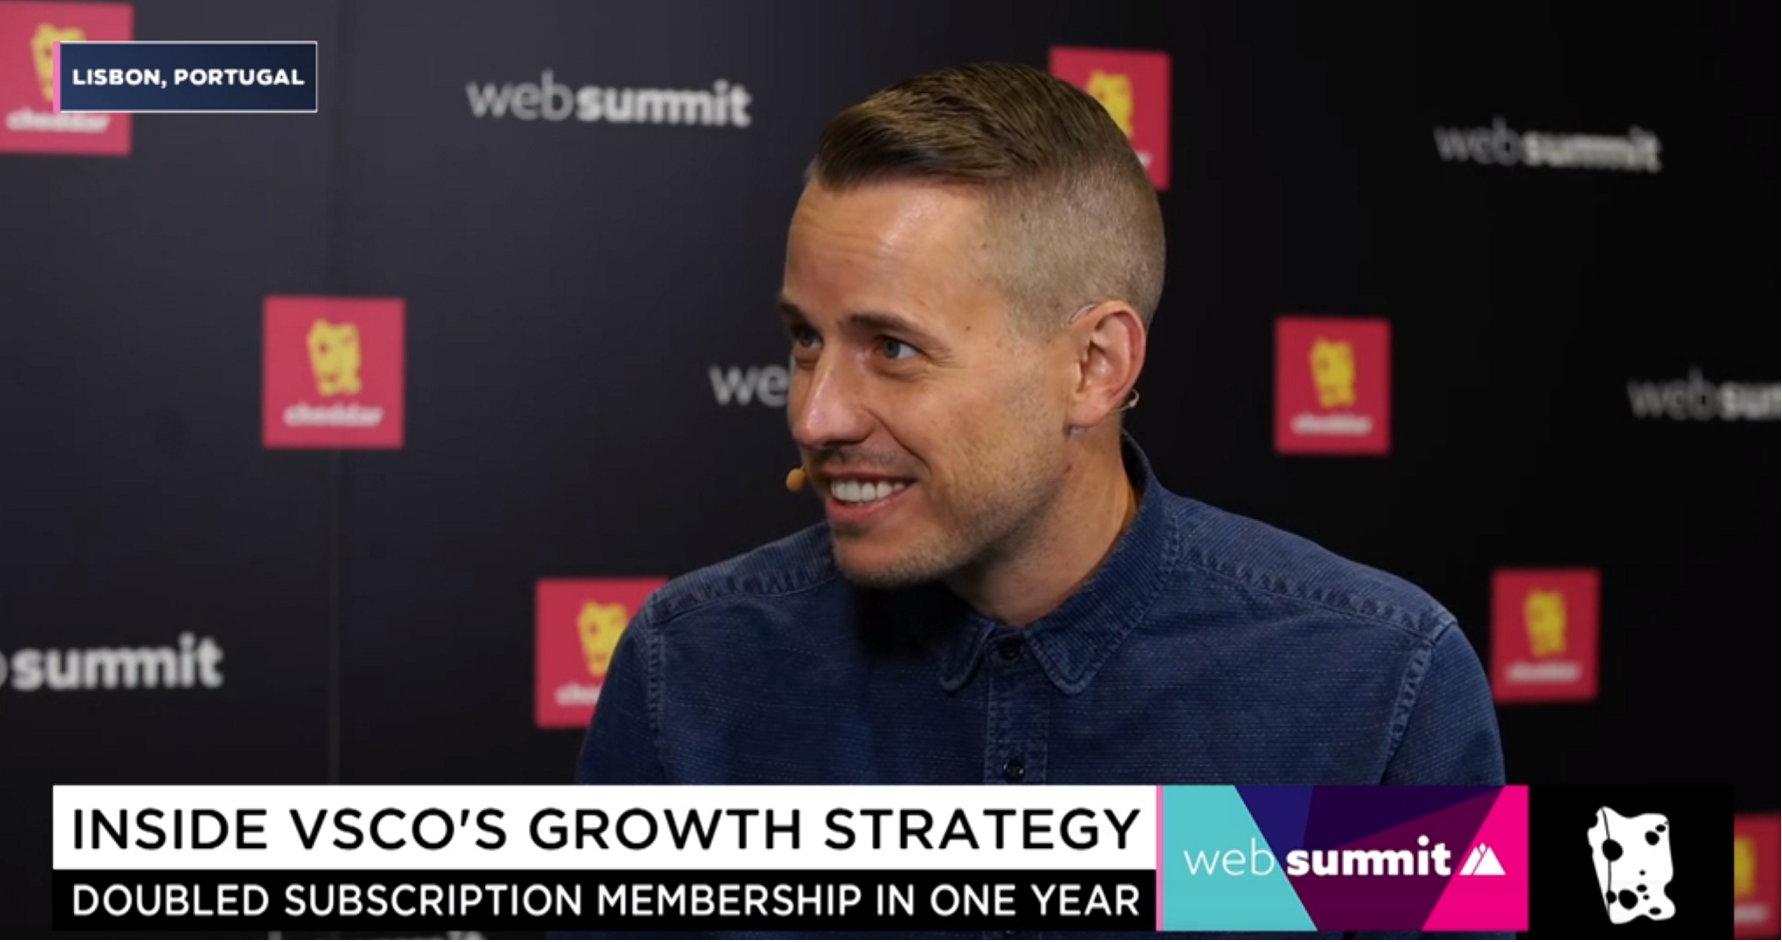 VSCO Hits 2 Million Paid Members, Making VSCO One of the Fastest Growing Subscription Businesses   November 8, 2018 - Cheddar's Alex Heath spoke with VSCO CEO Joel Flory at the Web Summit in Lisbon, Portugal about the platform's growth strategy after hitting 2 million paid users, how they are tapping into Gen Z, and their new partnership with Samsung.